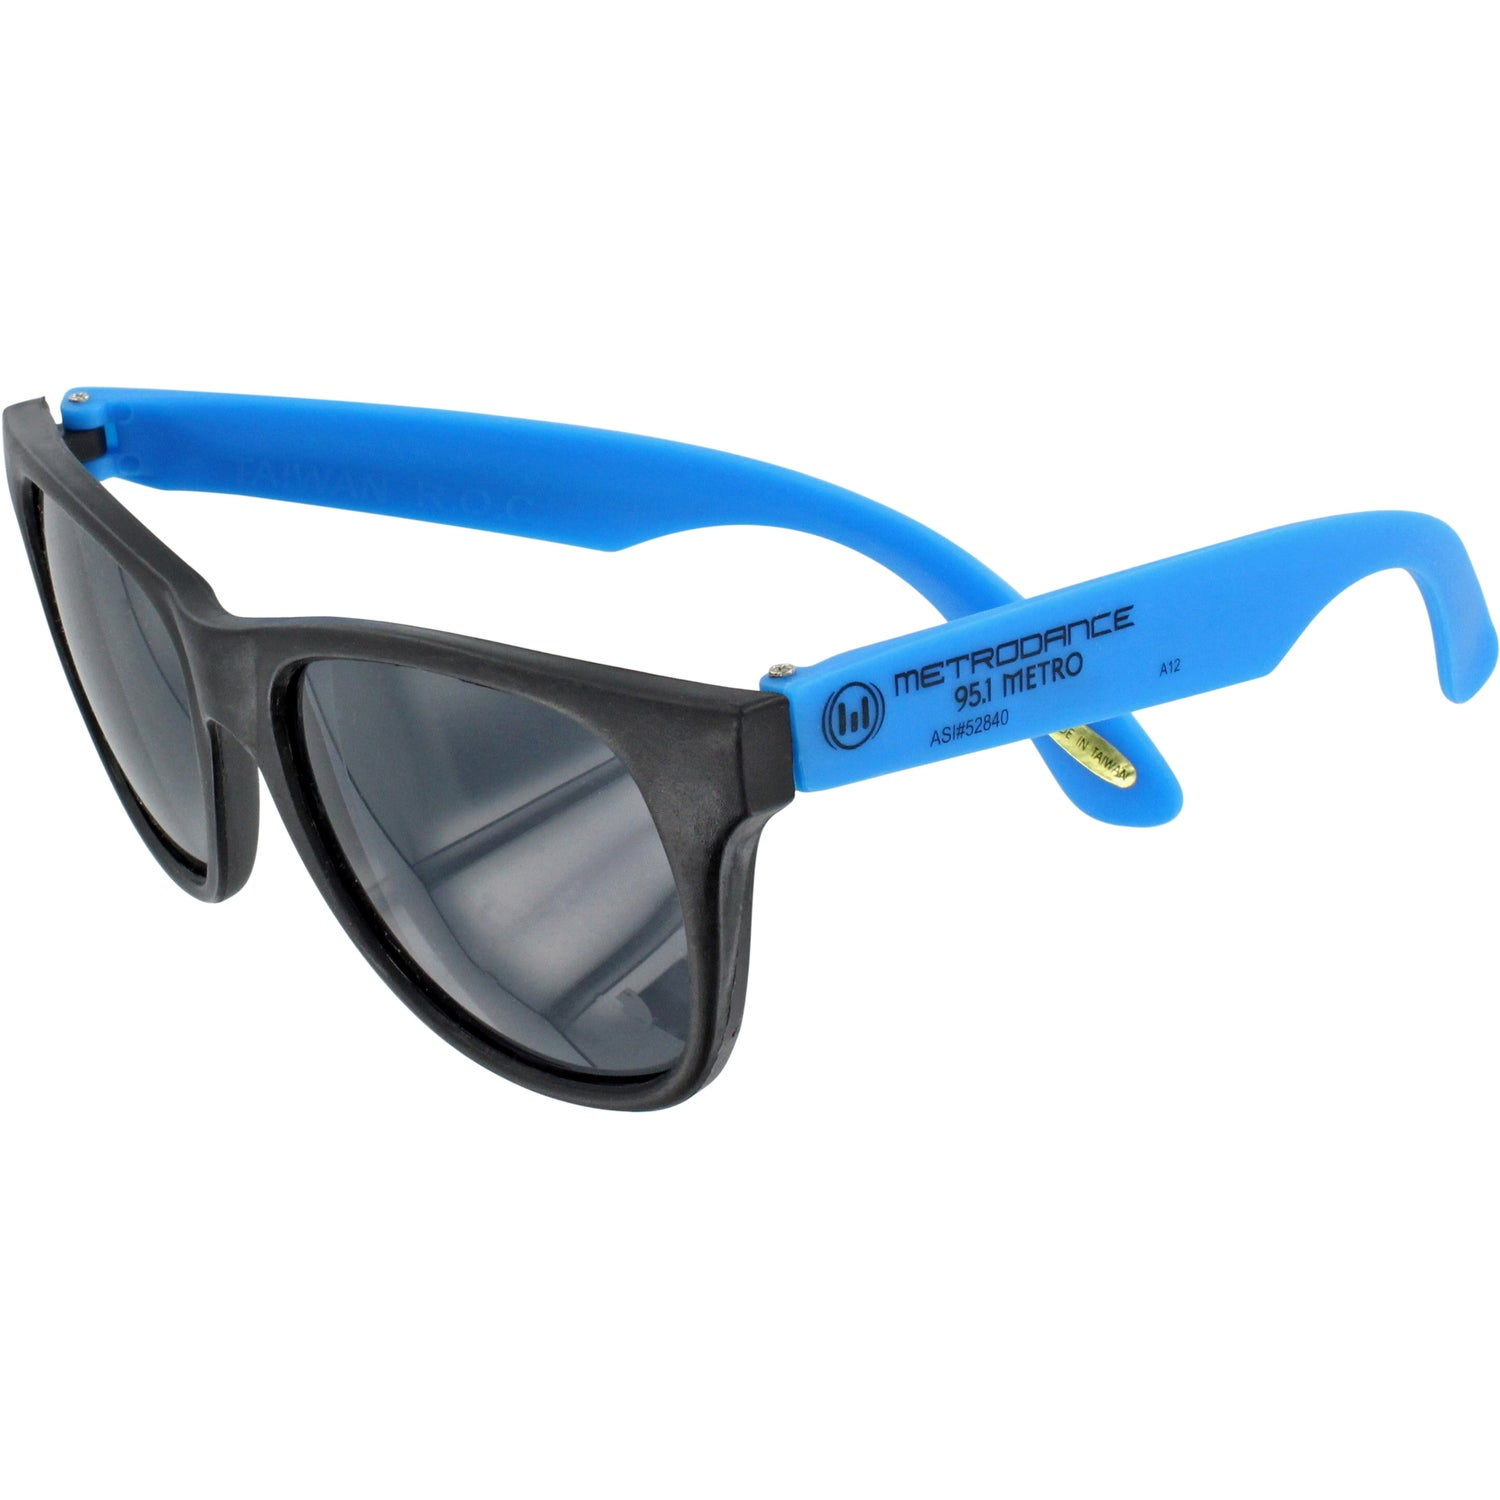 7a256d5e16 CLICK HERE to Order Neon Rubber Sunglasses Printed with Your Logo for 92¢  Ea.